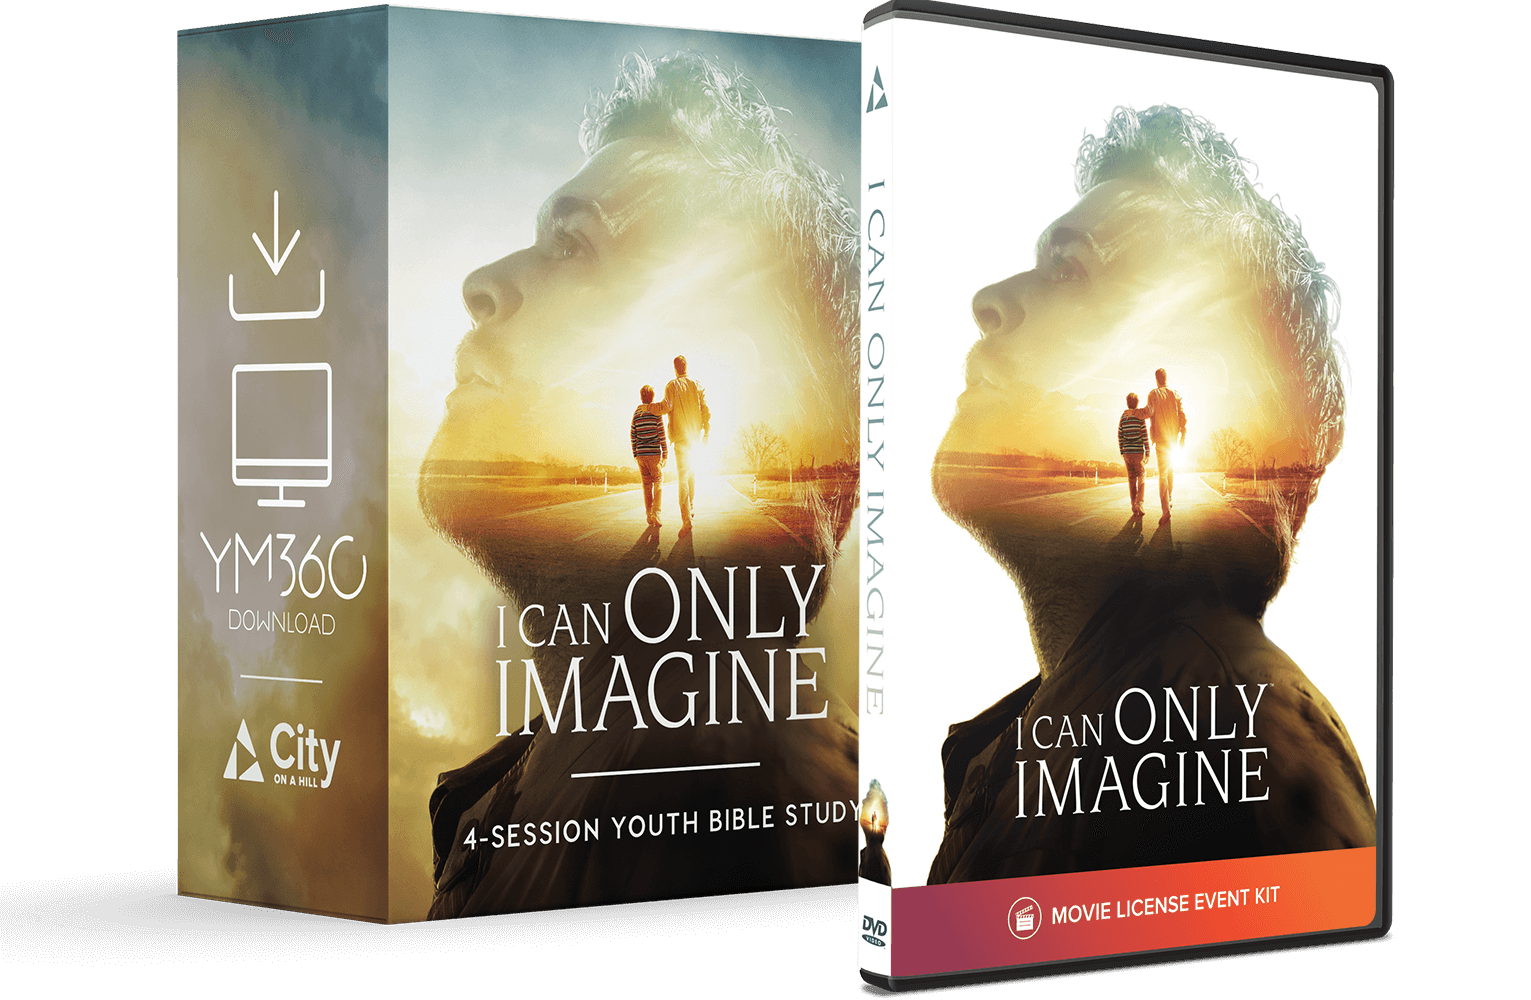 I Can Only Imagine Movie License And Bible Study Bundle Ym360